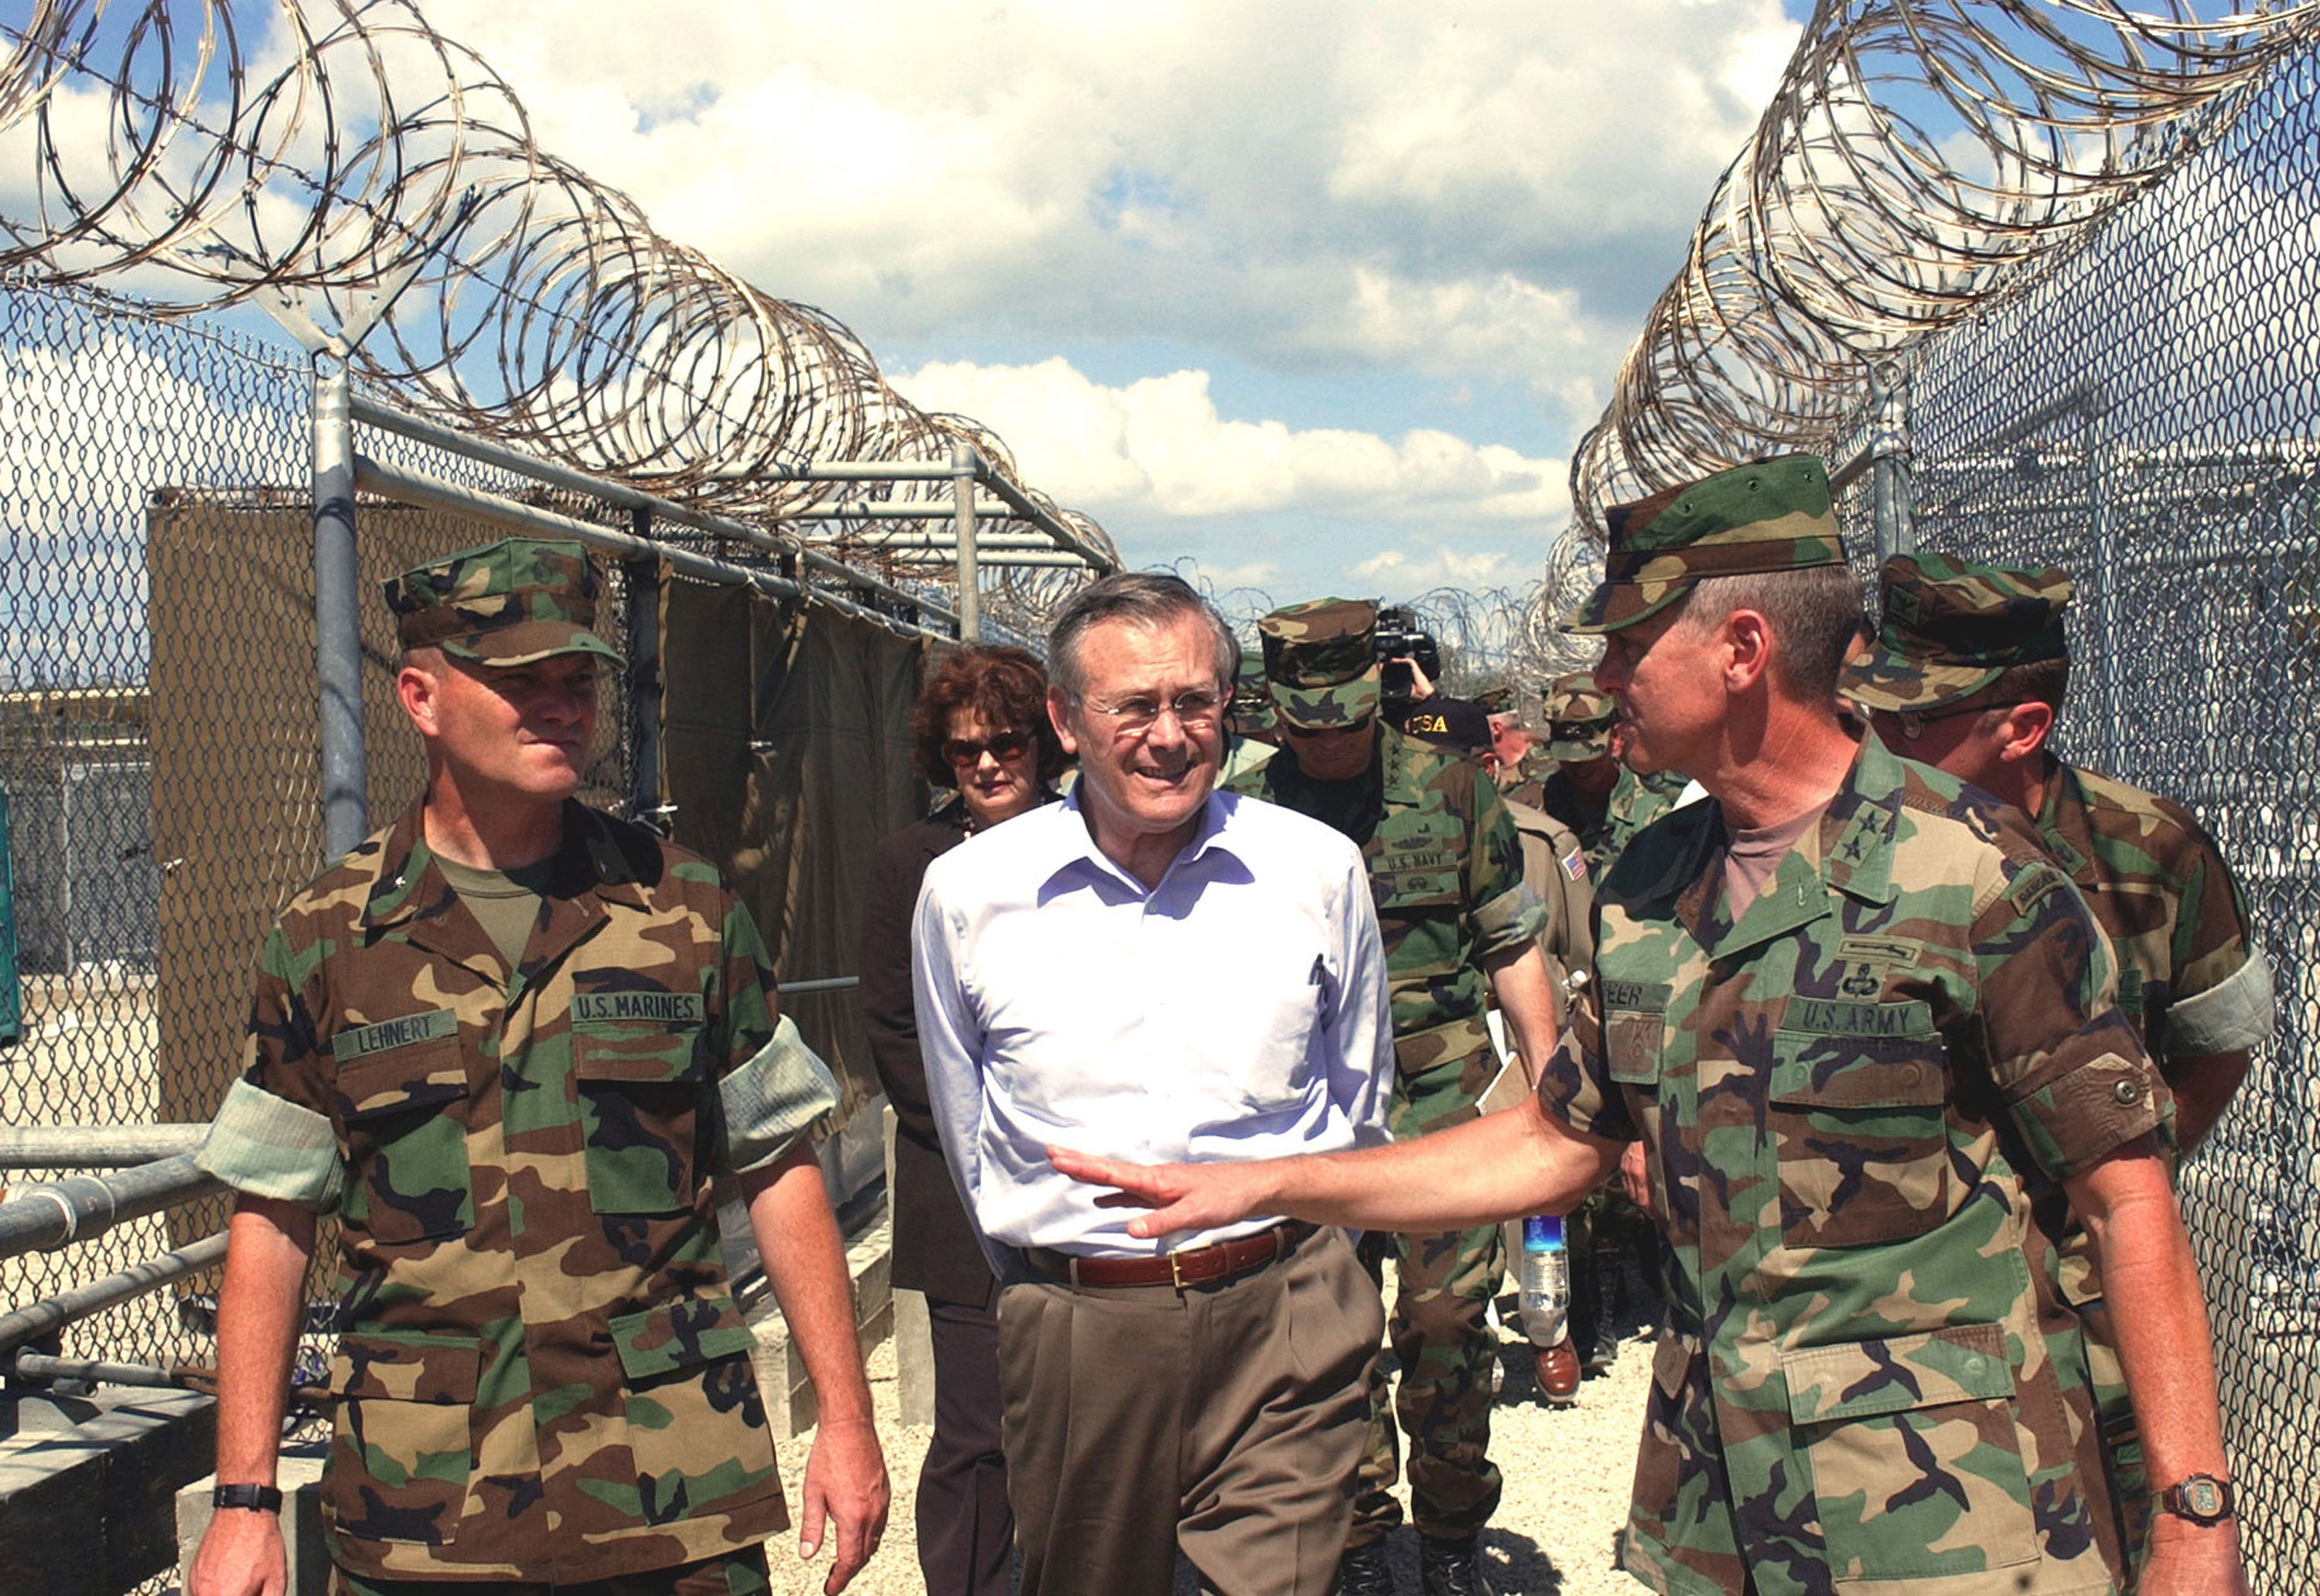 Then-Secretary of Defense Donald Rumsfield tours Guantanamo. (Getty)